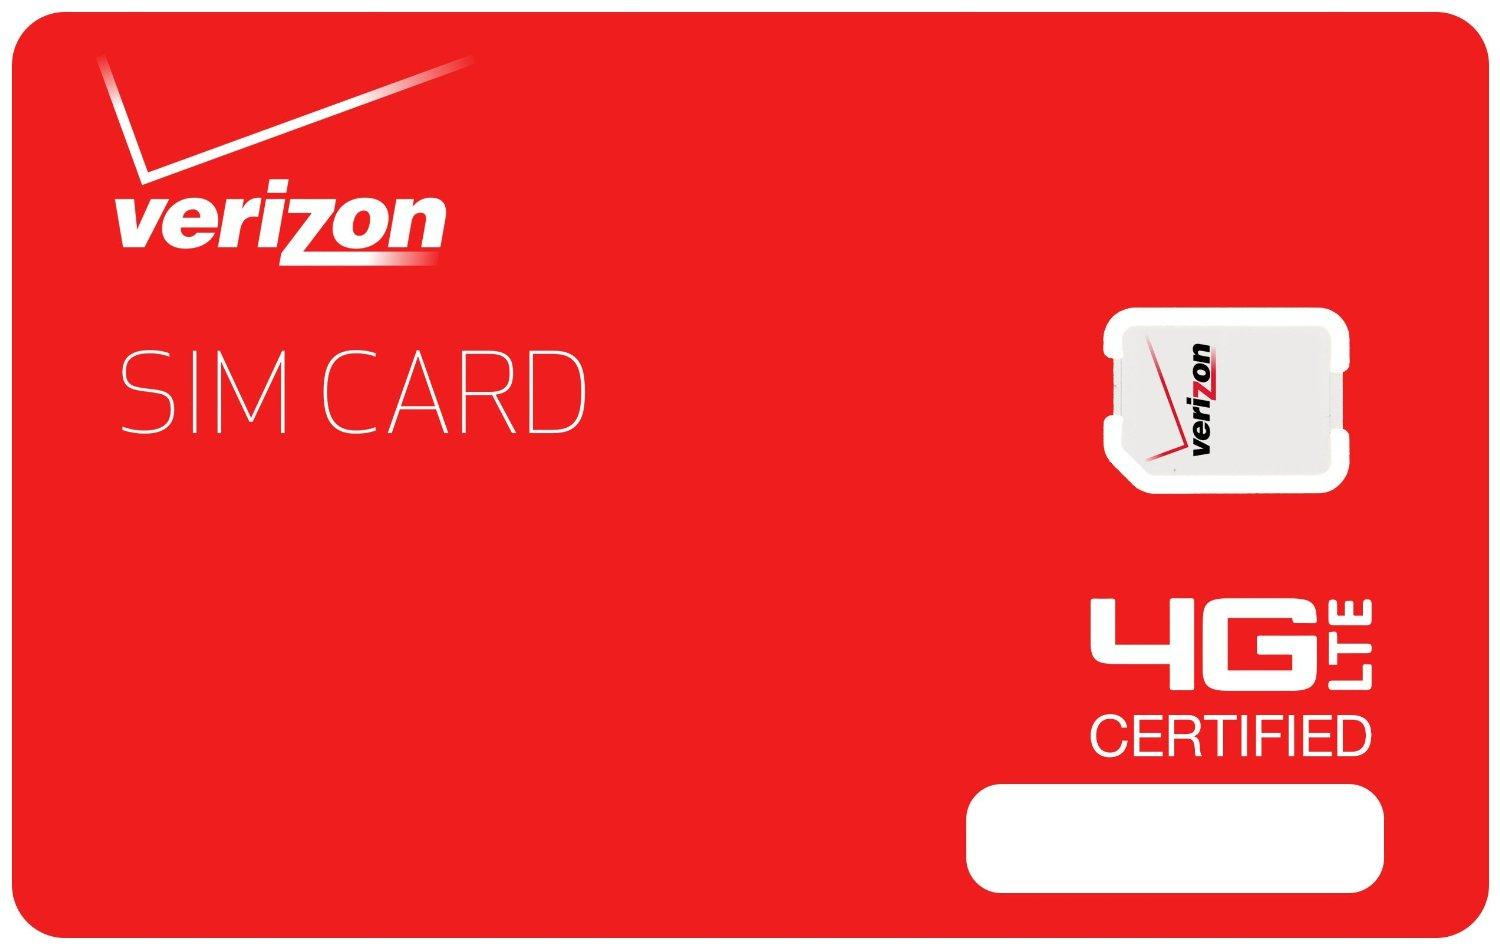 Only $24.99 Verizon 4G SIM Activation Kit include the first month service